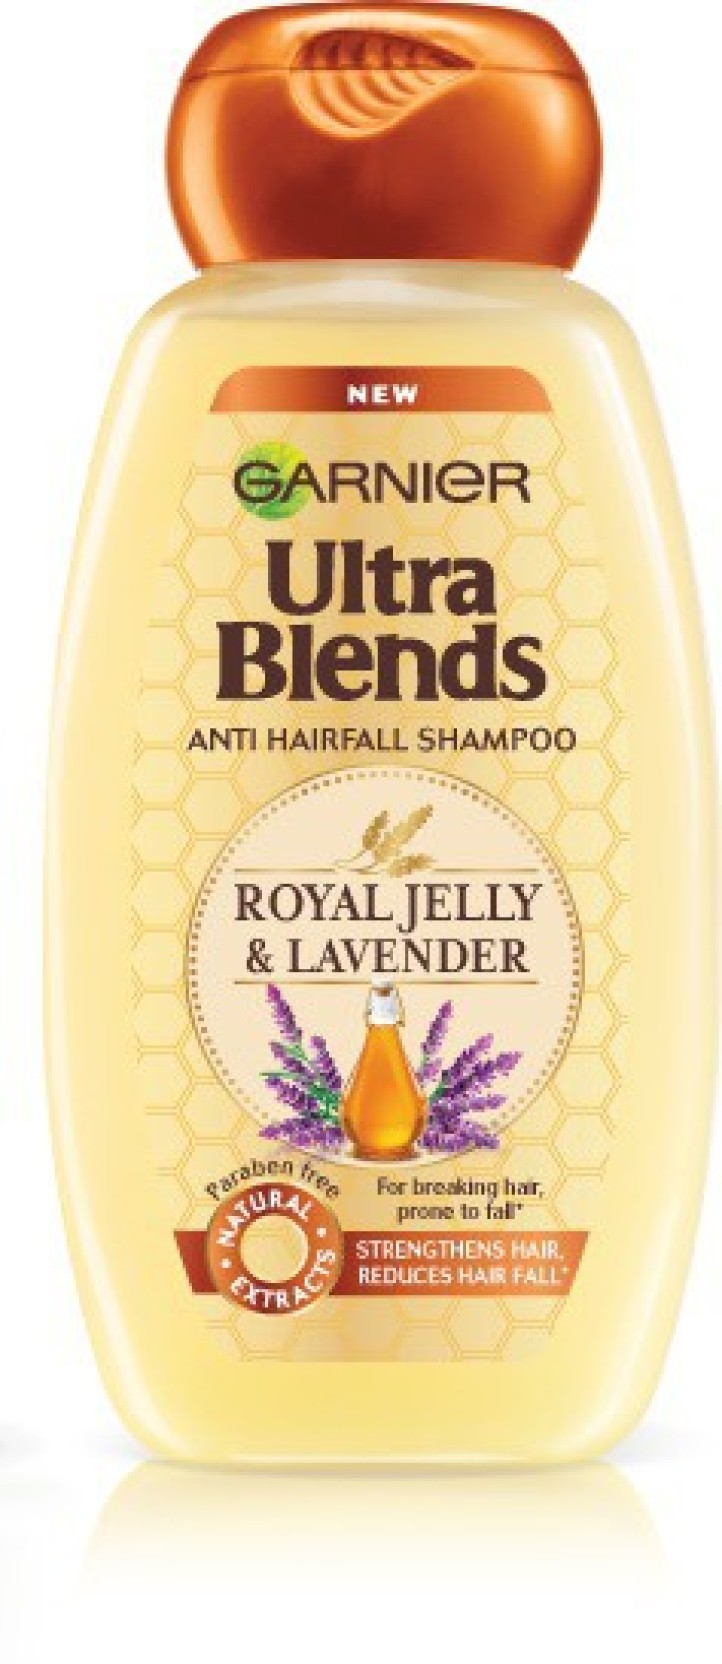 Garnier Ultra Blends Royal Jelly Lavender Shampoo Price In India Clear Strong Soft Women 170 Ml Add To Cart